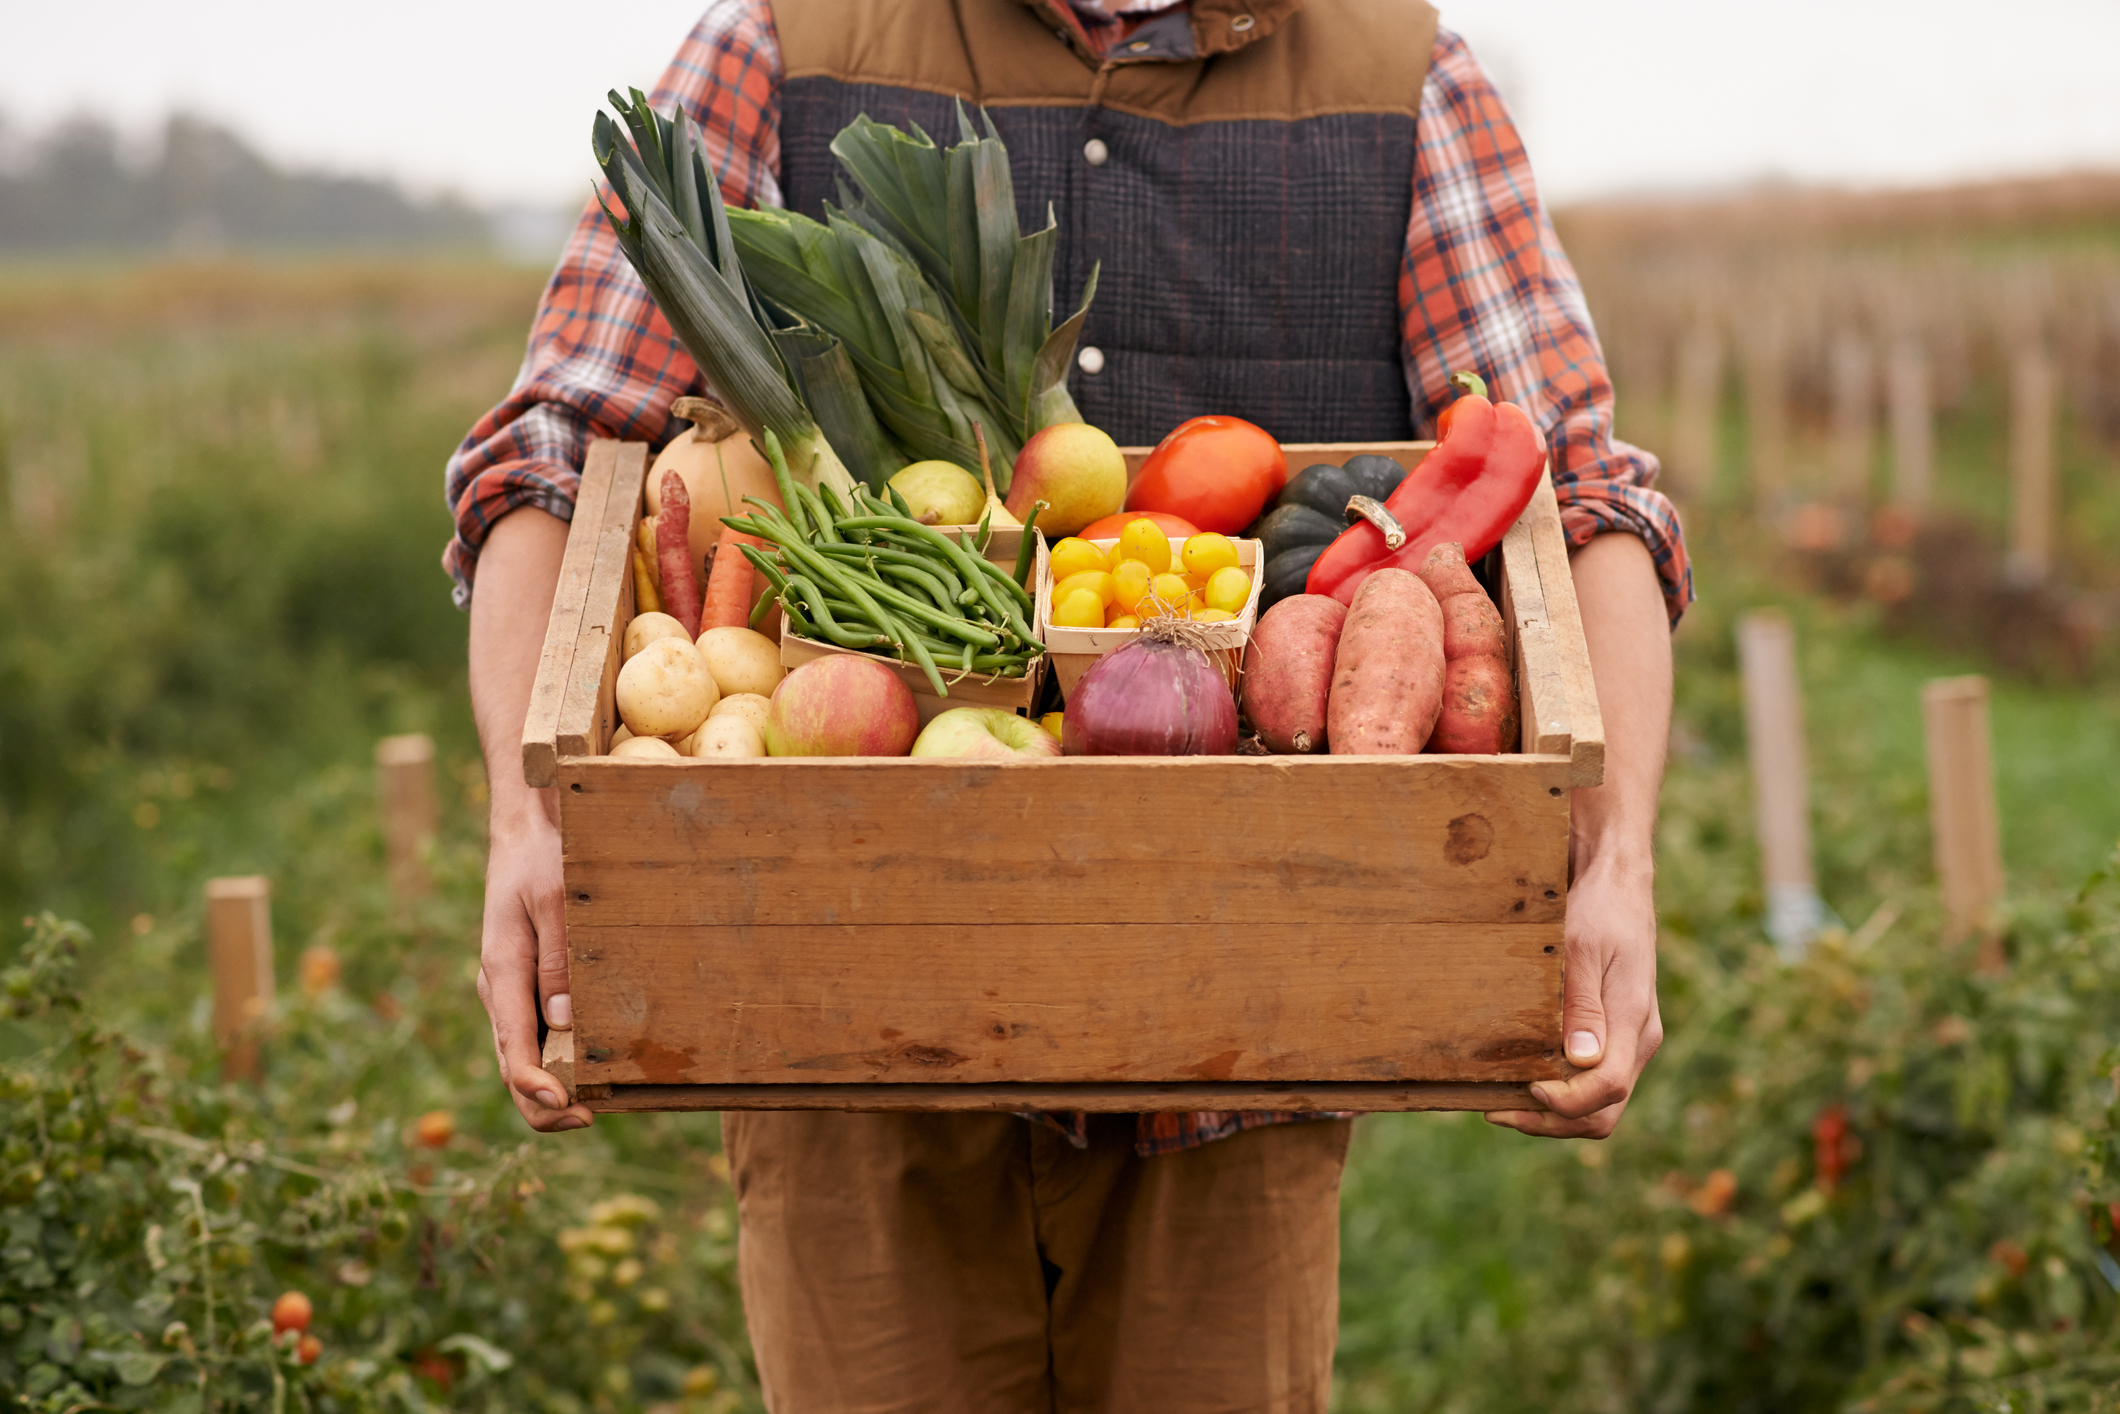 Community Supported Agriculture - Join our limited CSA membership for local, organic, seasonal vegetables every week!